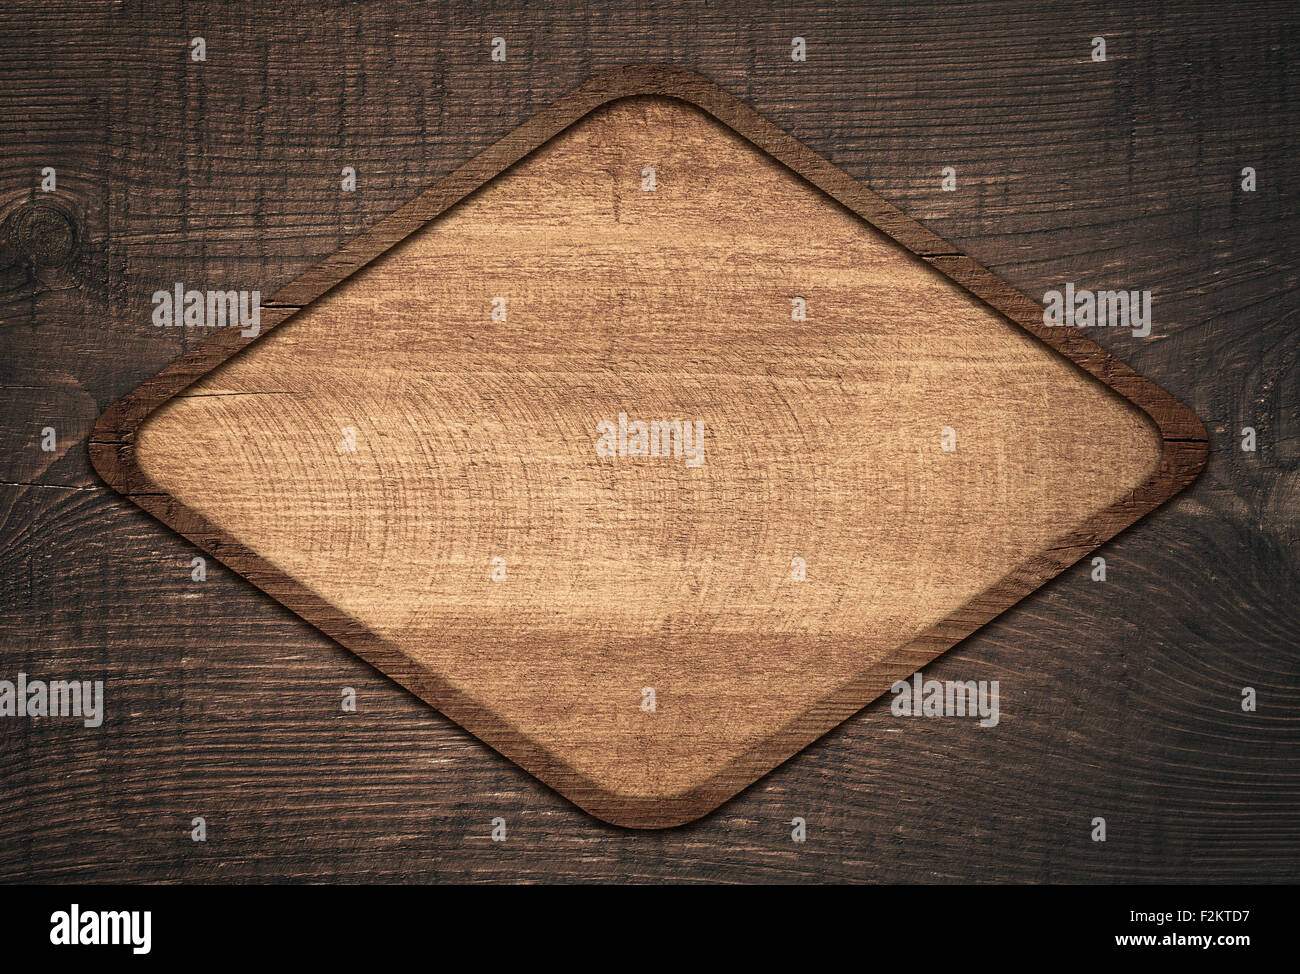 Brown wooden lozenge with frame on dark wall - Stock Image